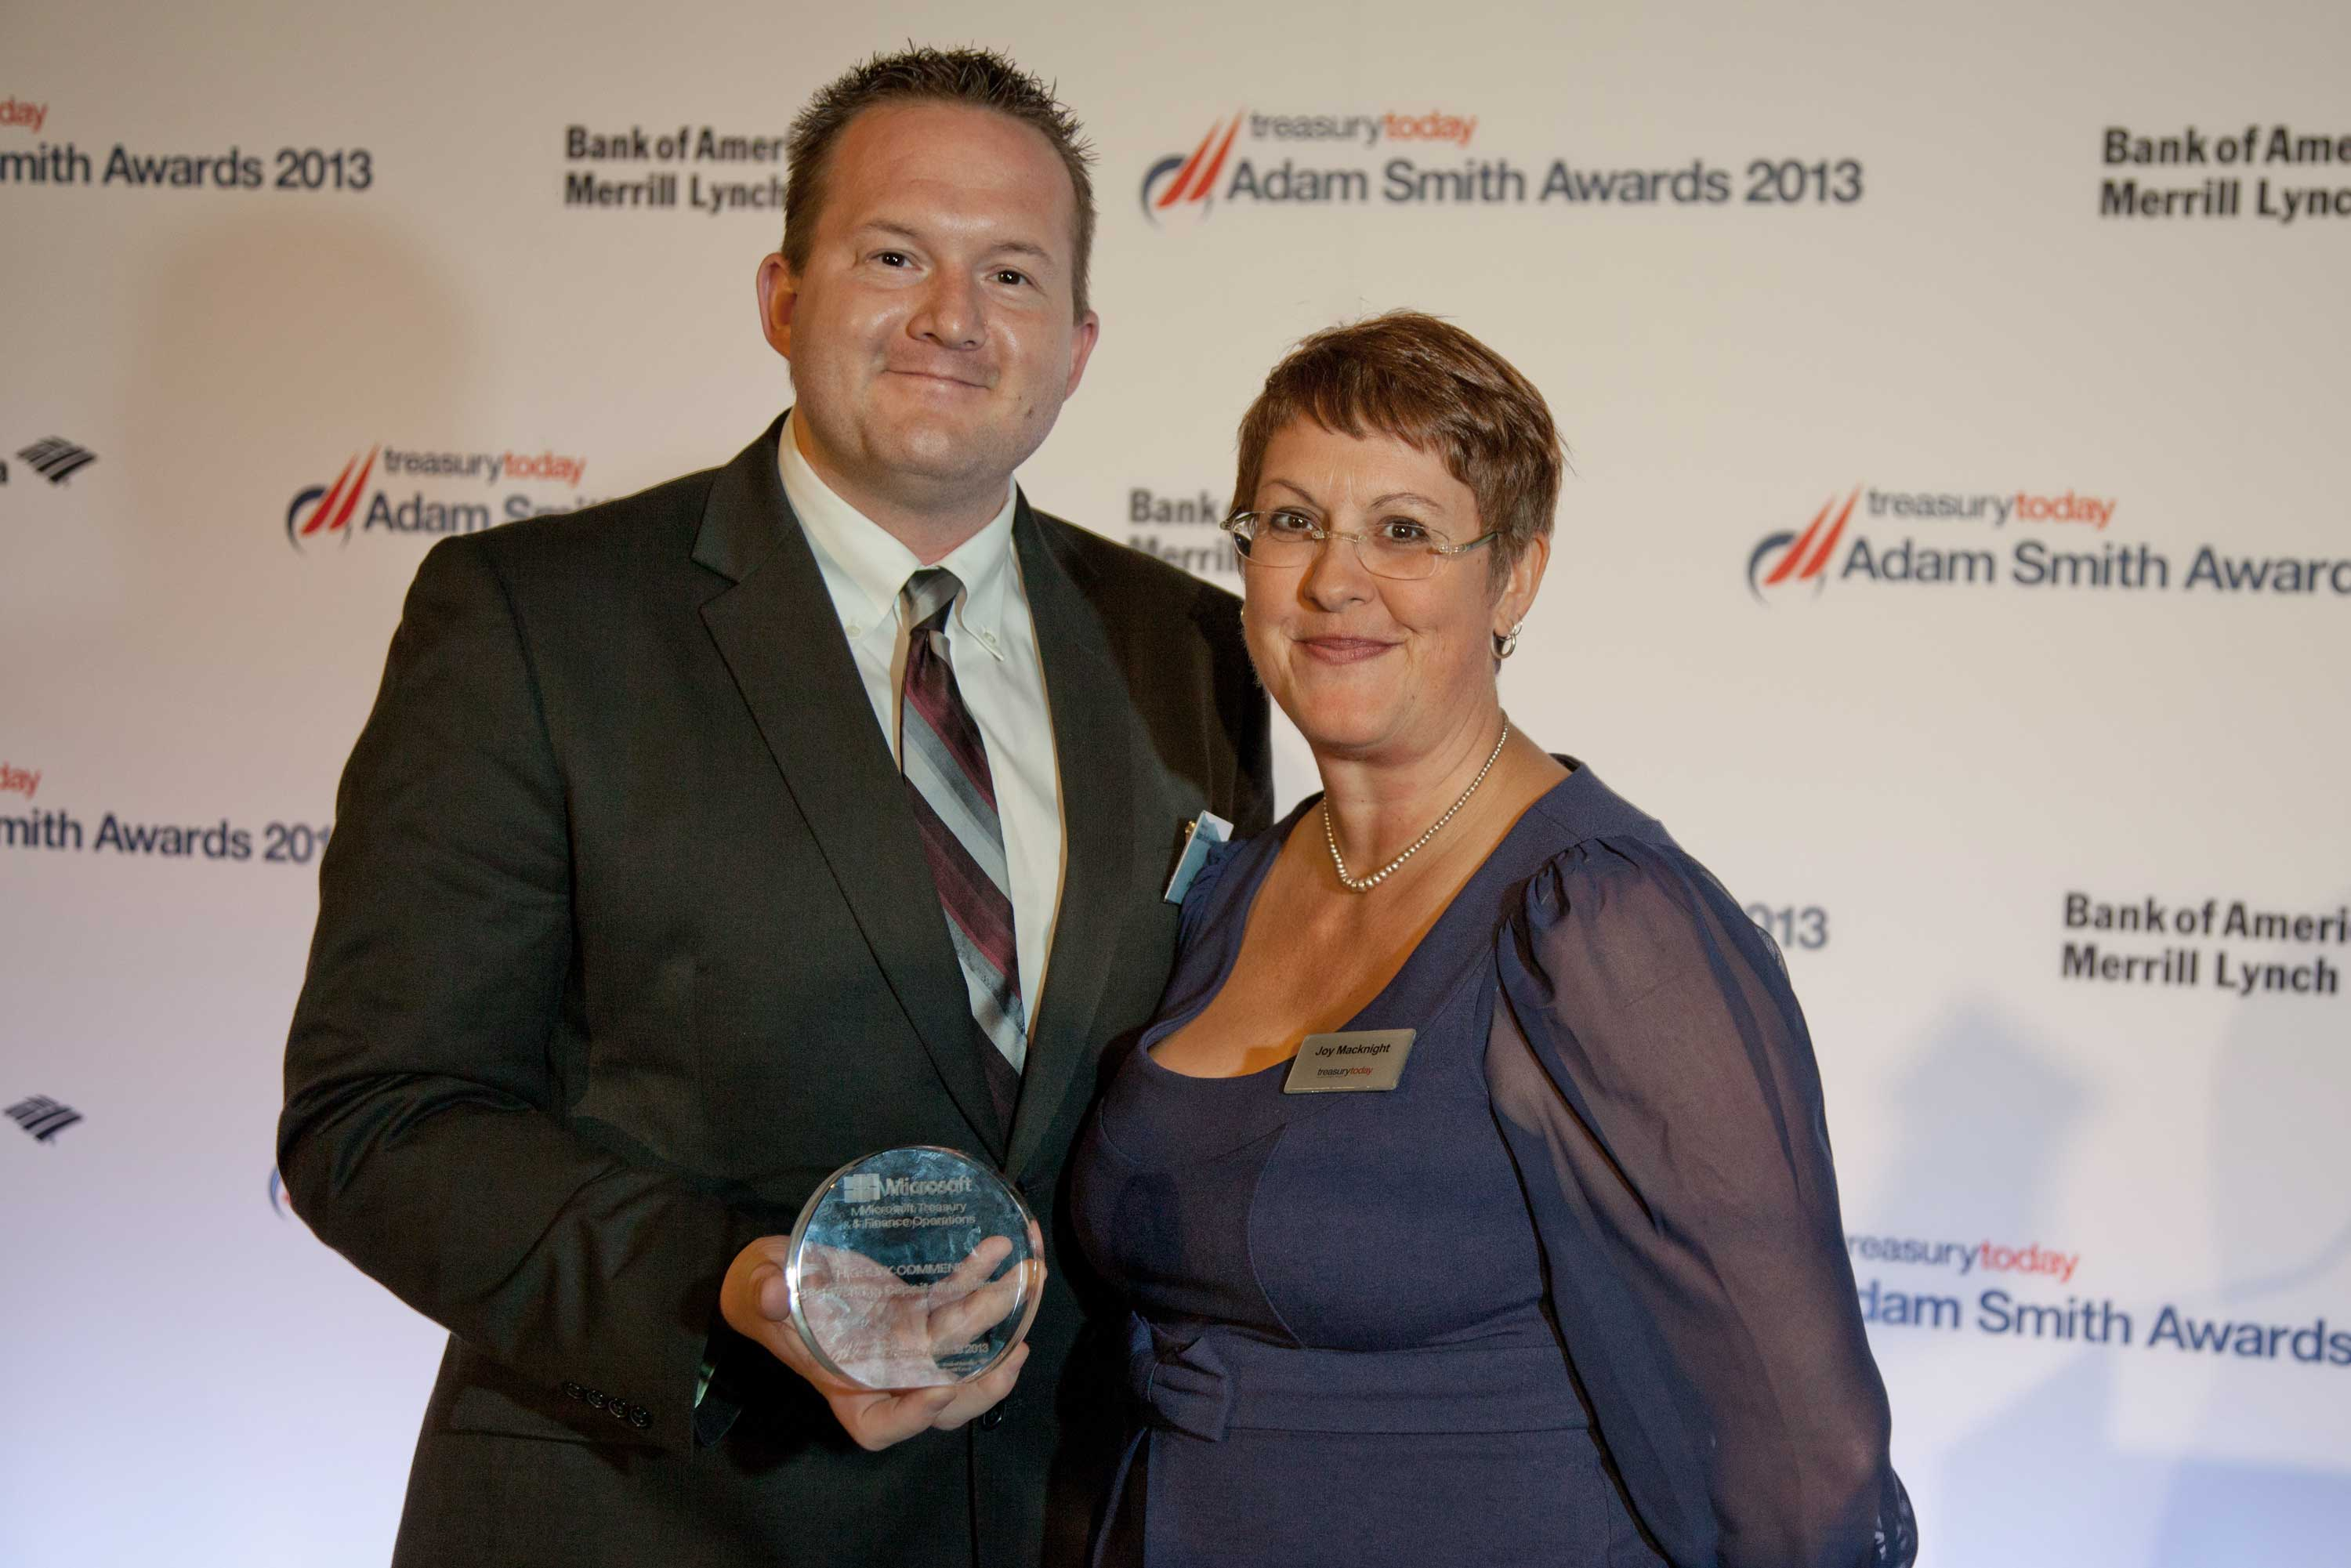 Best Working Capital Management Solution, Highly Commended – Jim Scurlock, Microsoft and Joy Macknight.